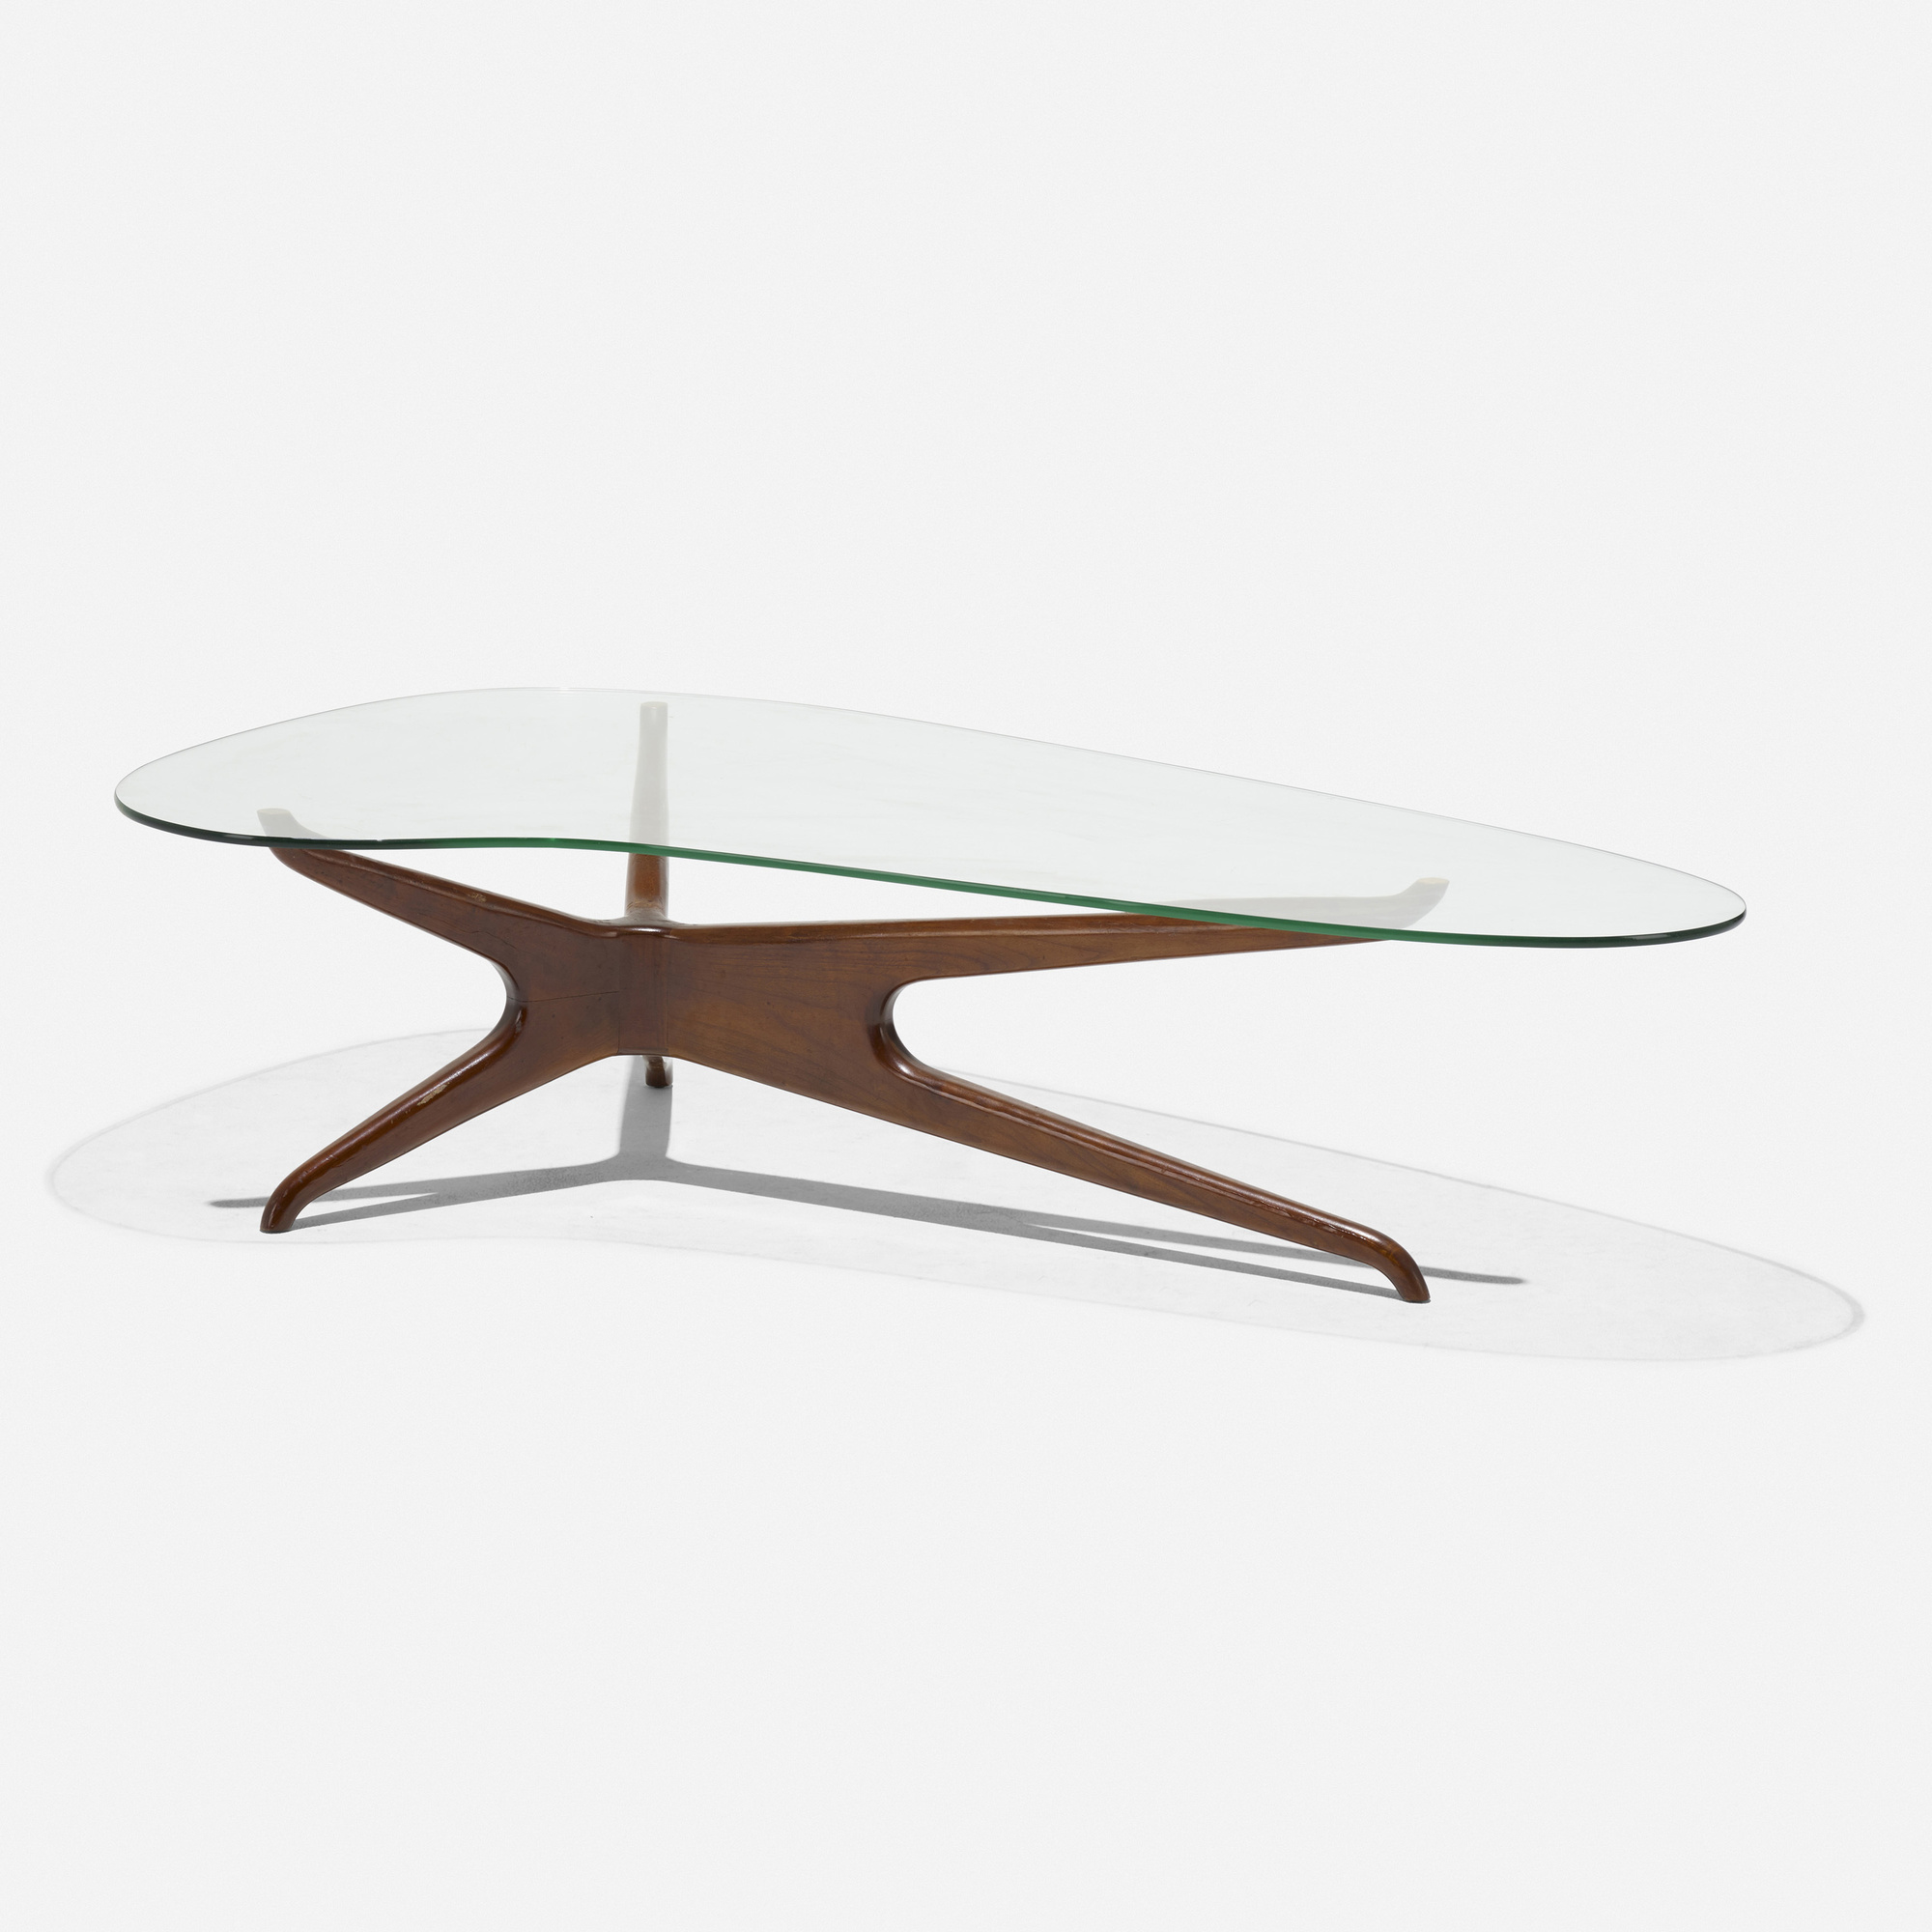 220 In The Manner Of Vladimir Kagan Coffee Table American Design 18 February 2021 Auctions Wright Auctions Of Art And Design